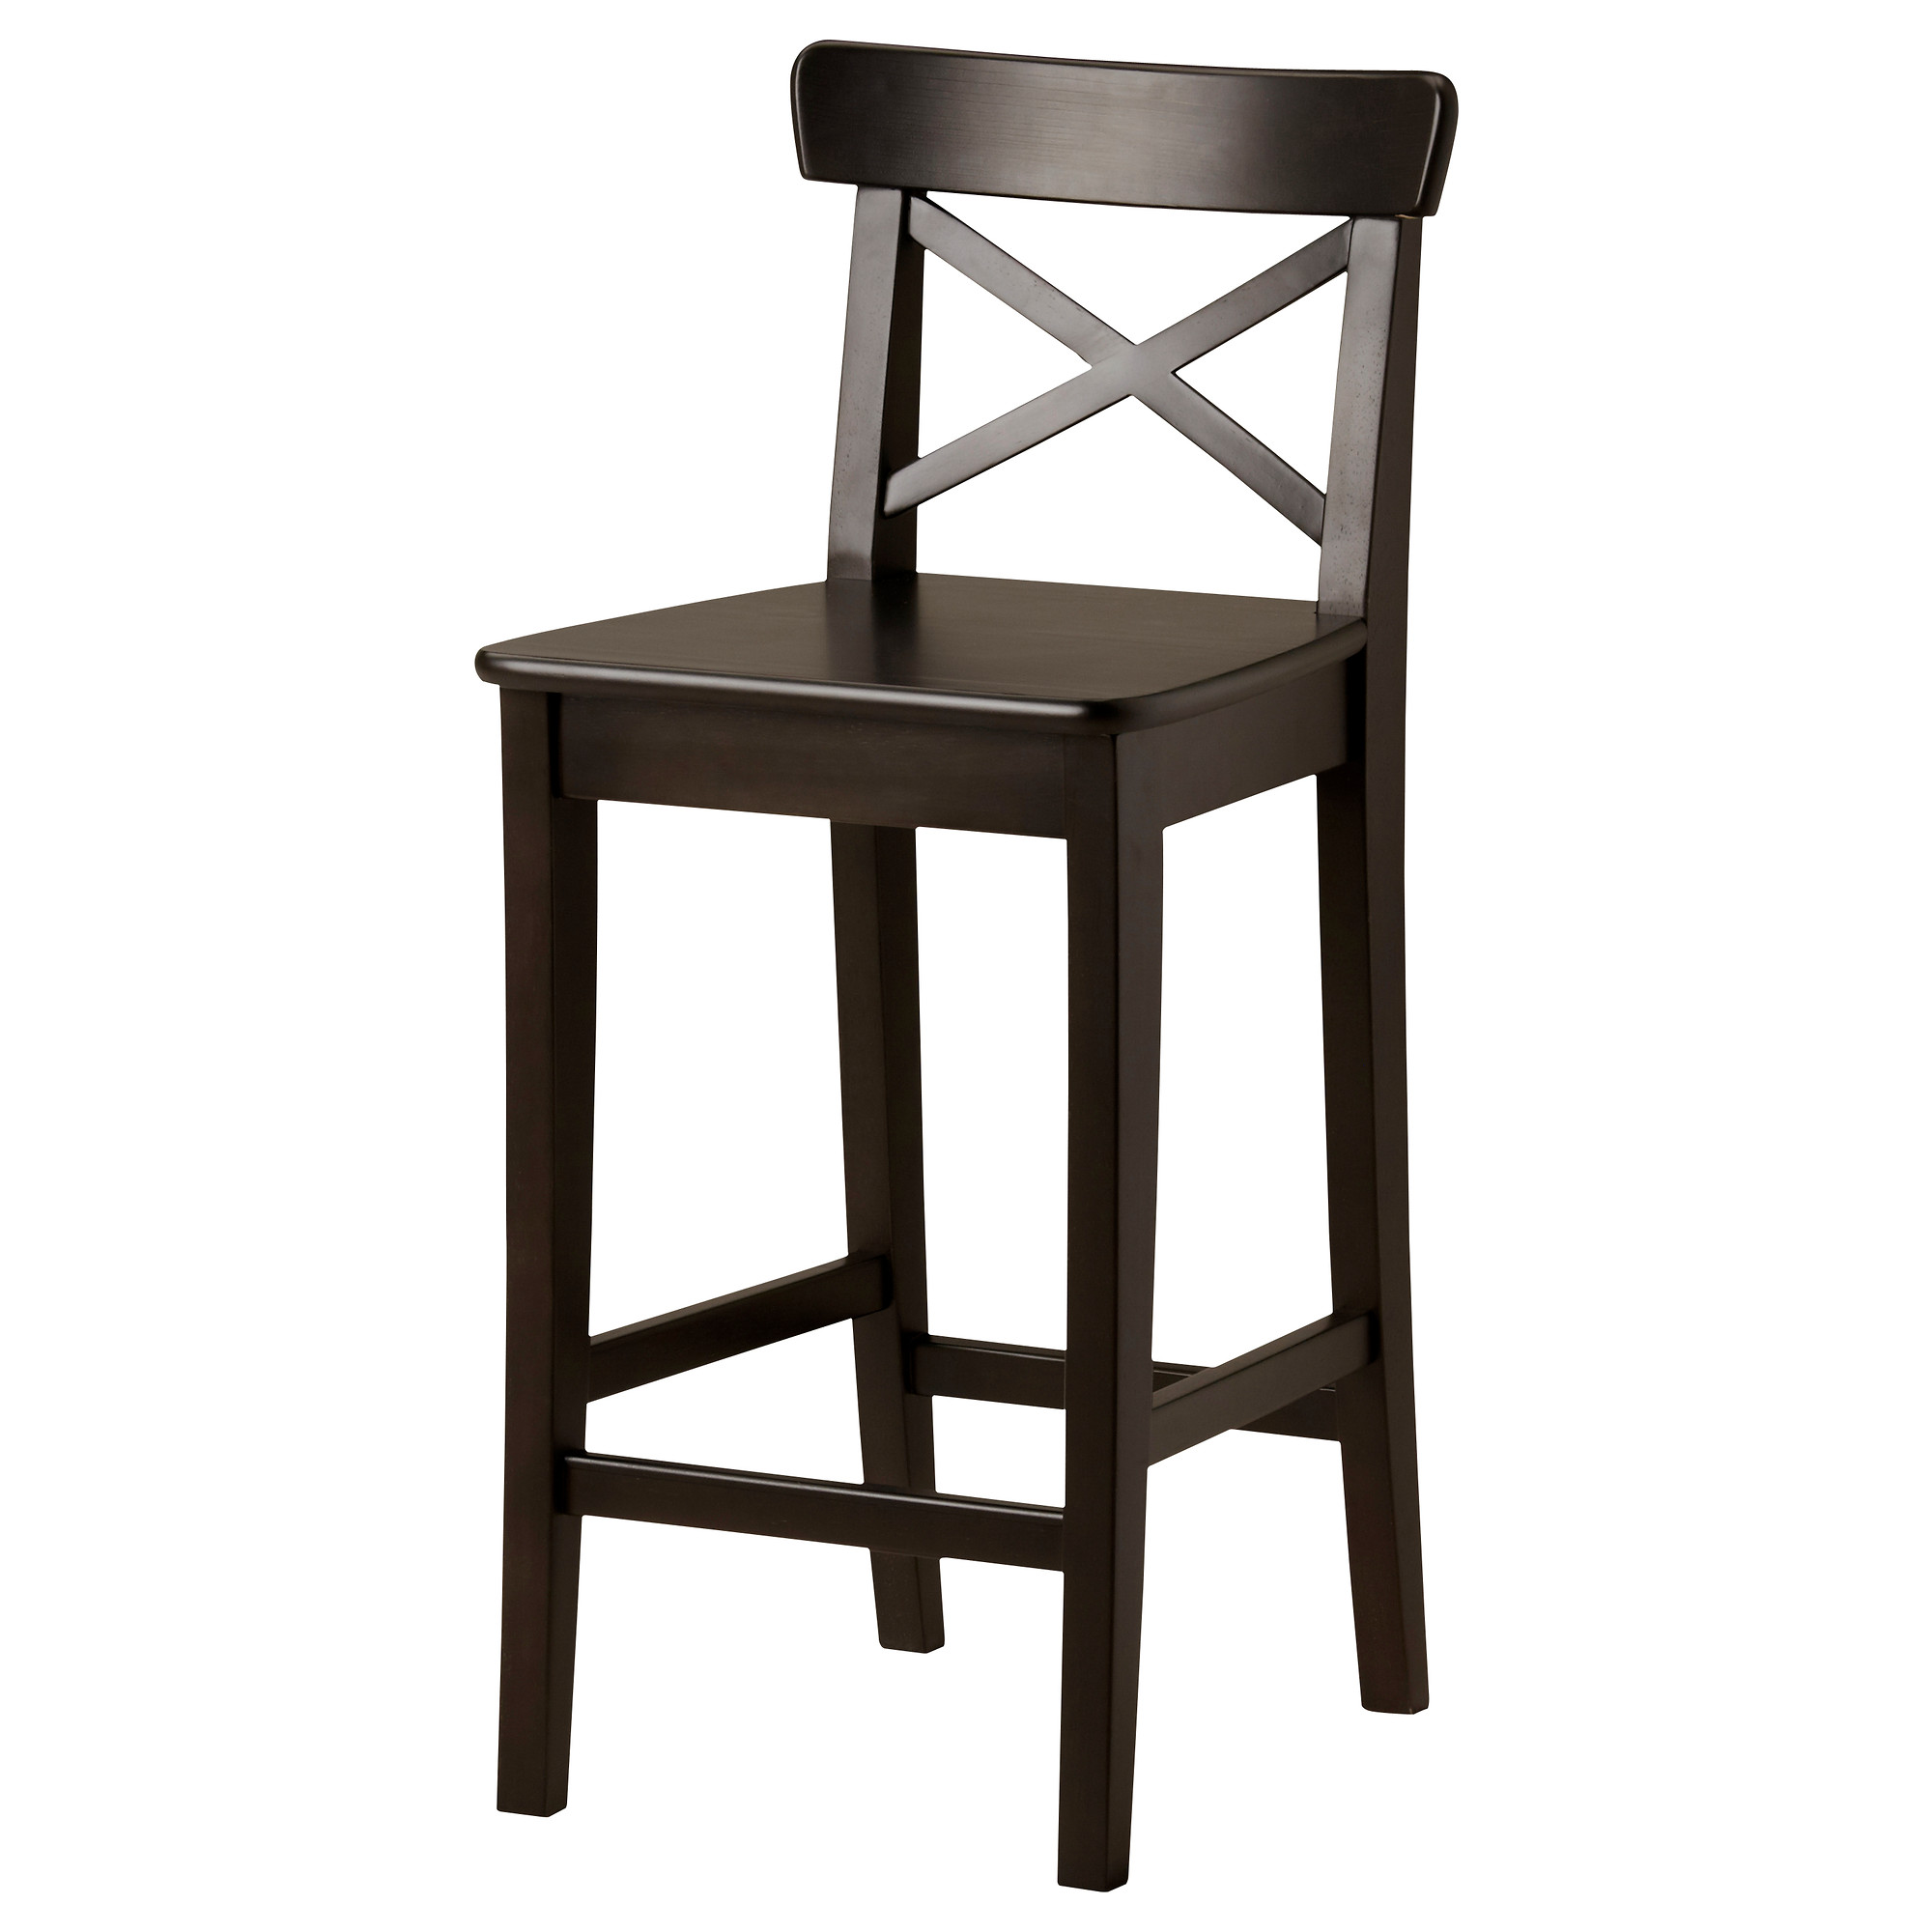 Cool Bar Stools Design Gives Perfection Meeting Urban